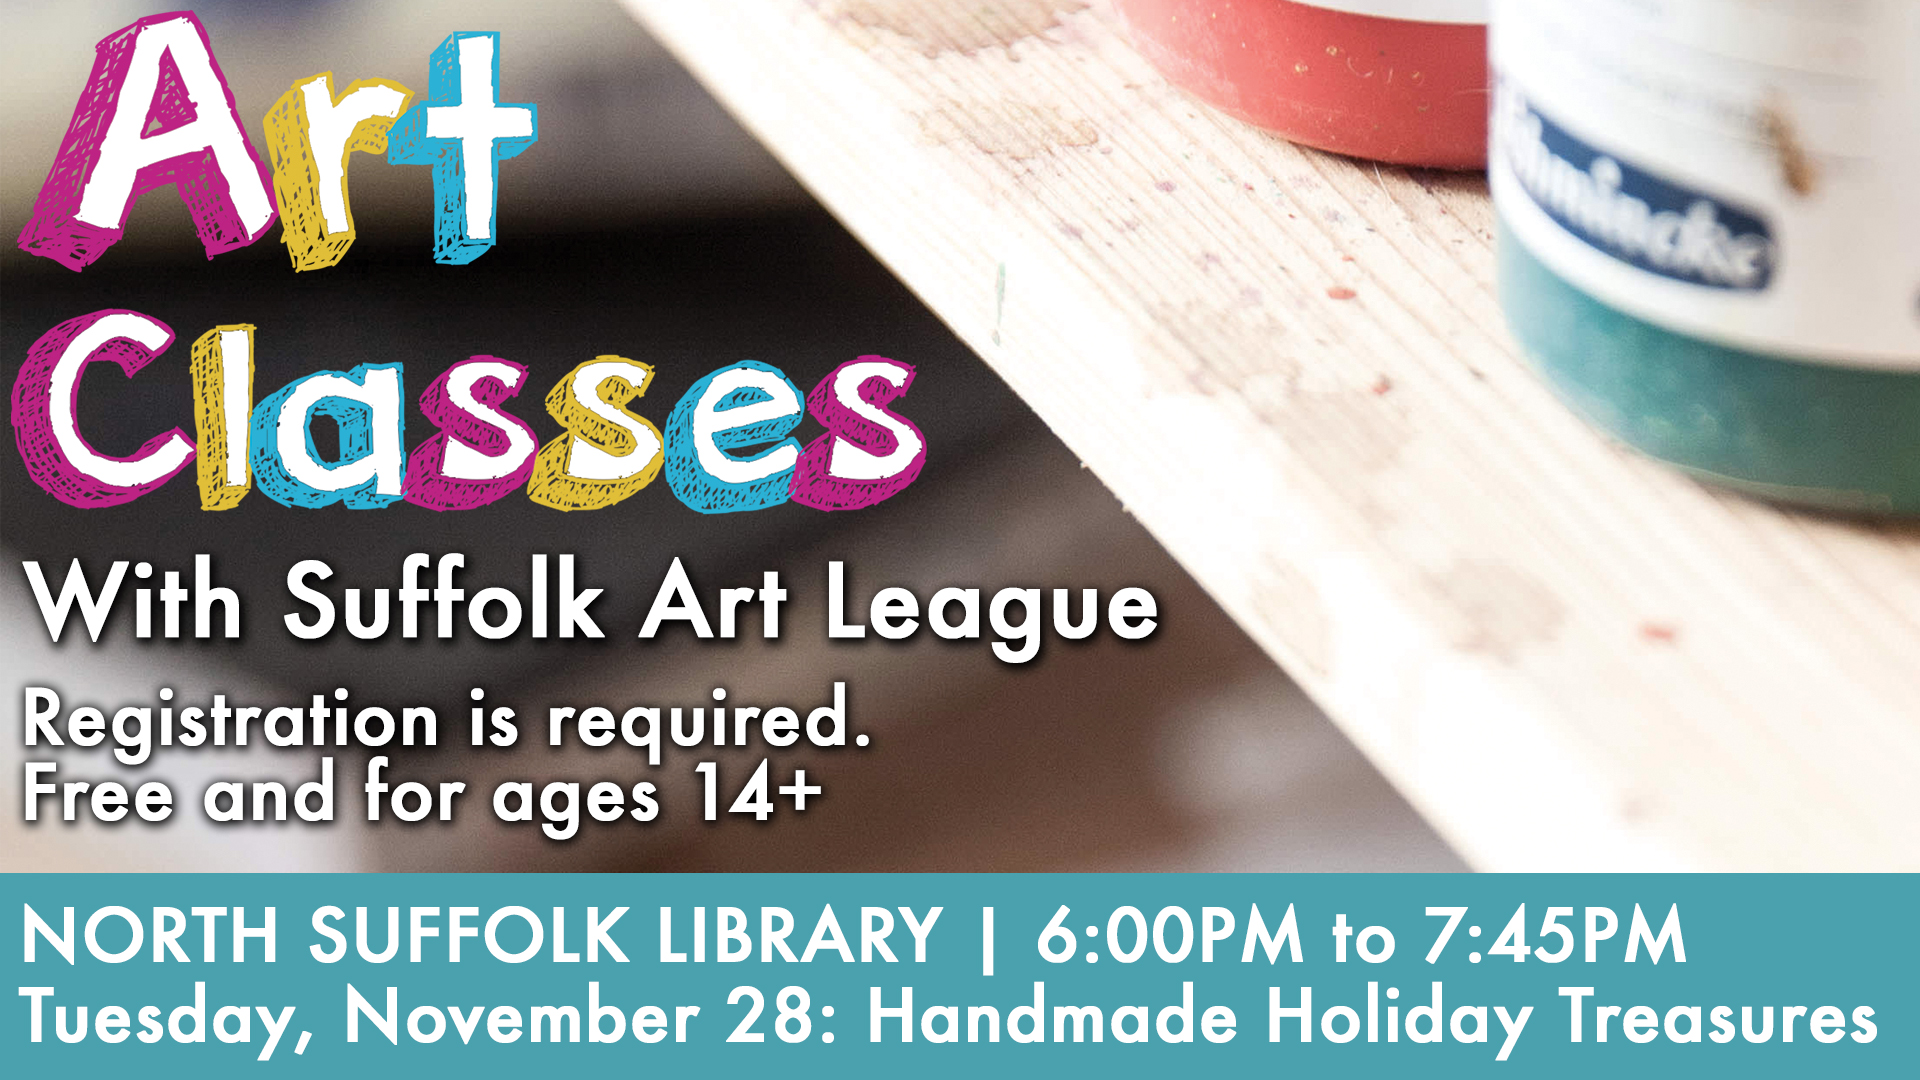 Art Classes with the Suffolk Art League